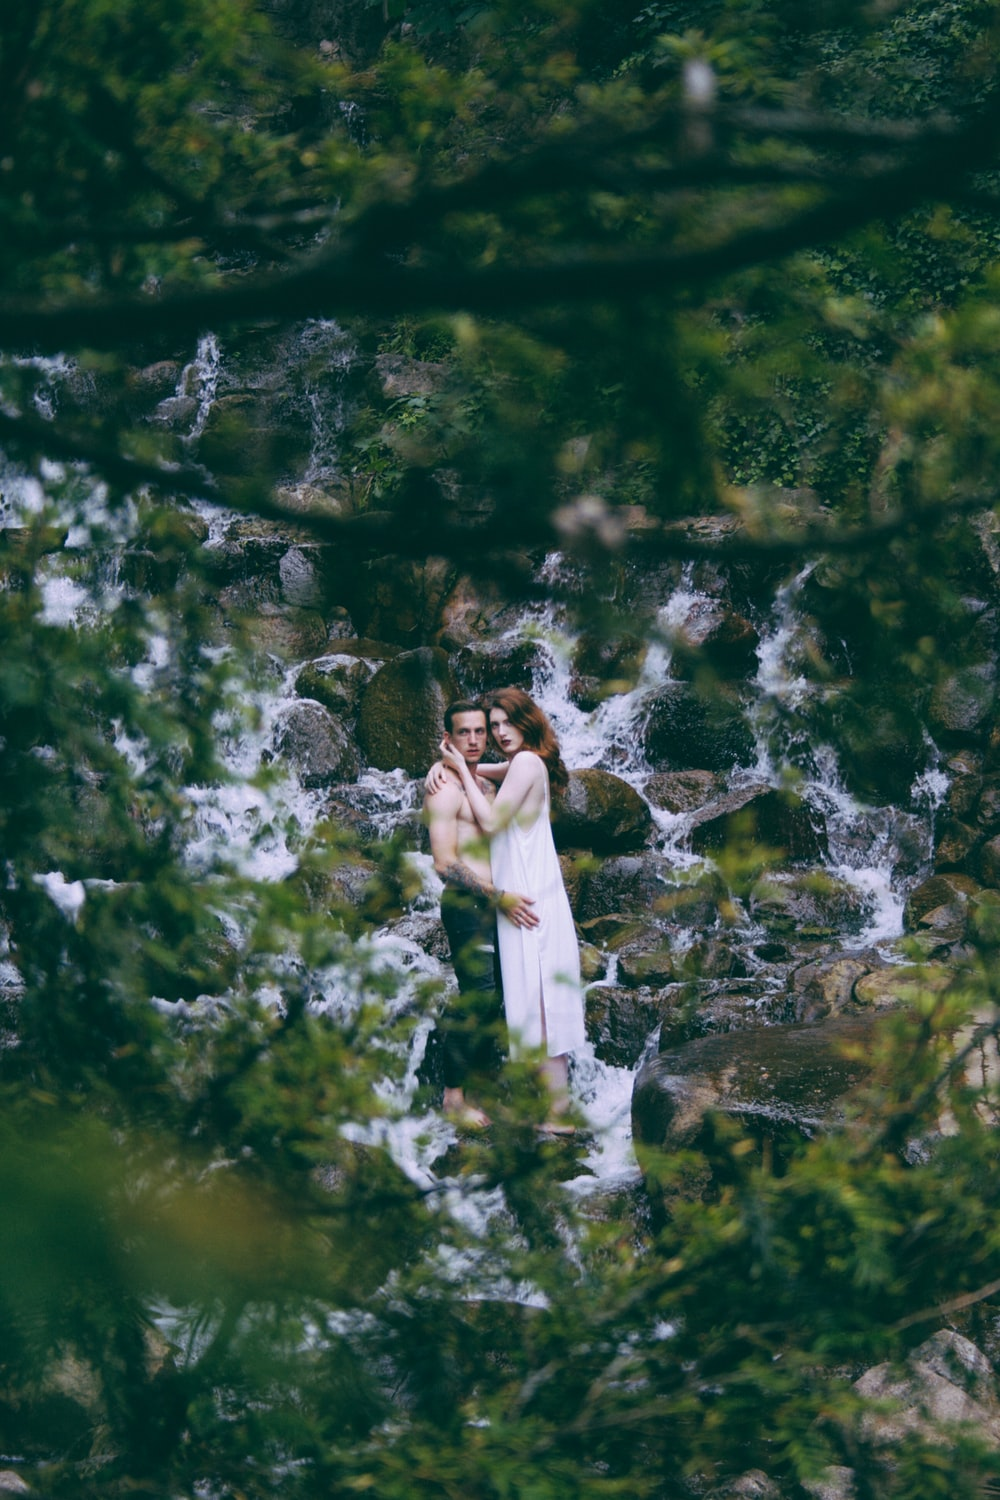 man and woman hugging on running water surrounded by rocks